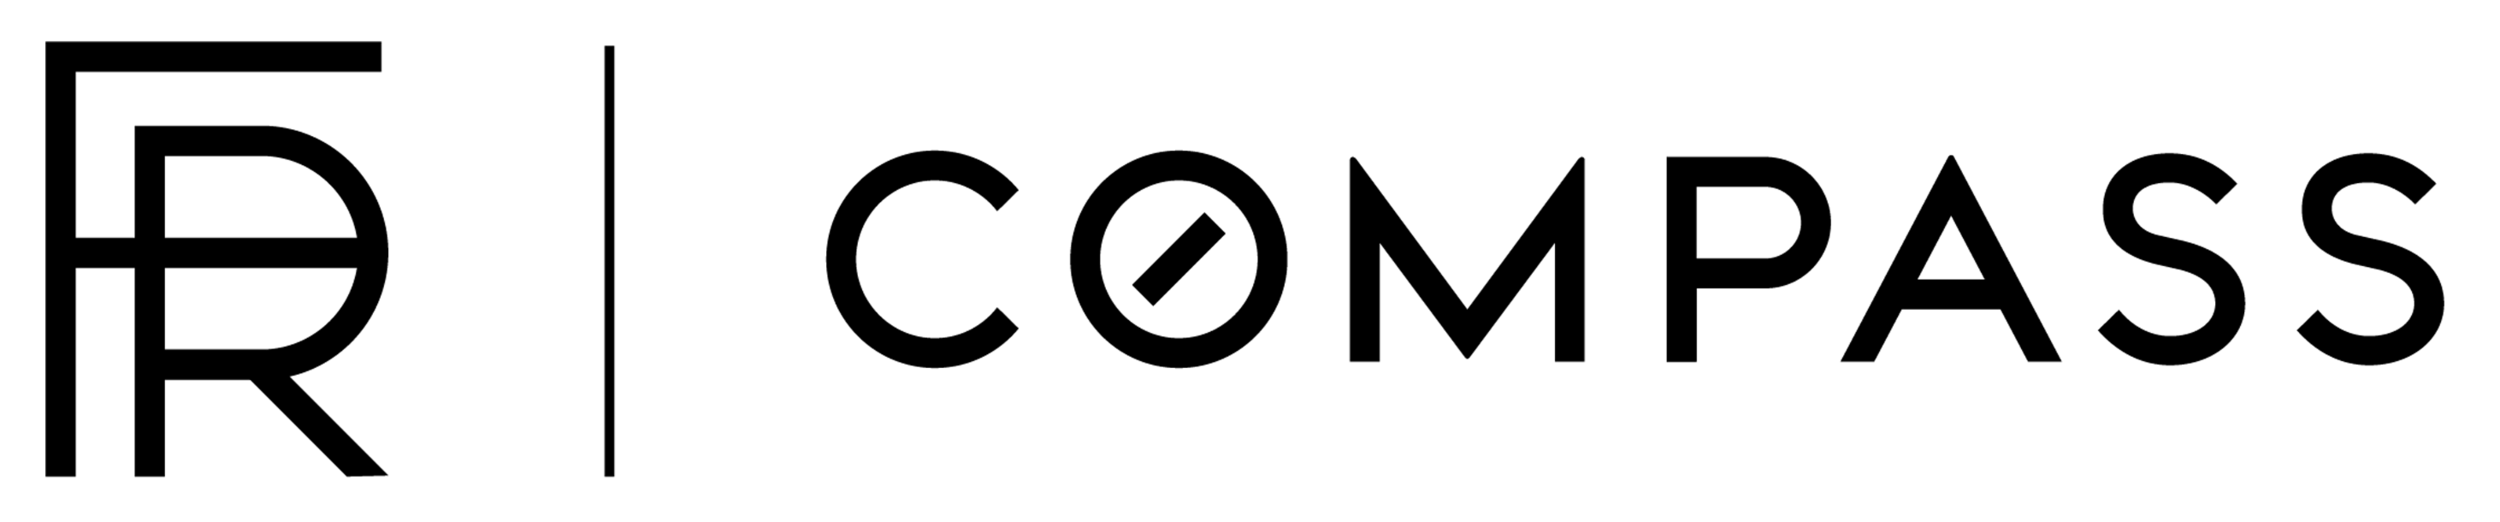 FedericoRolon_Logo._layout_Agent Brand Black.png